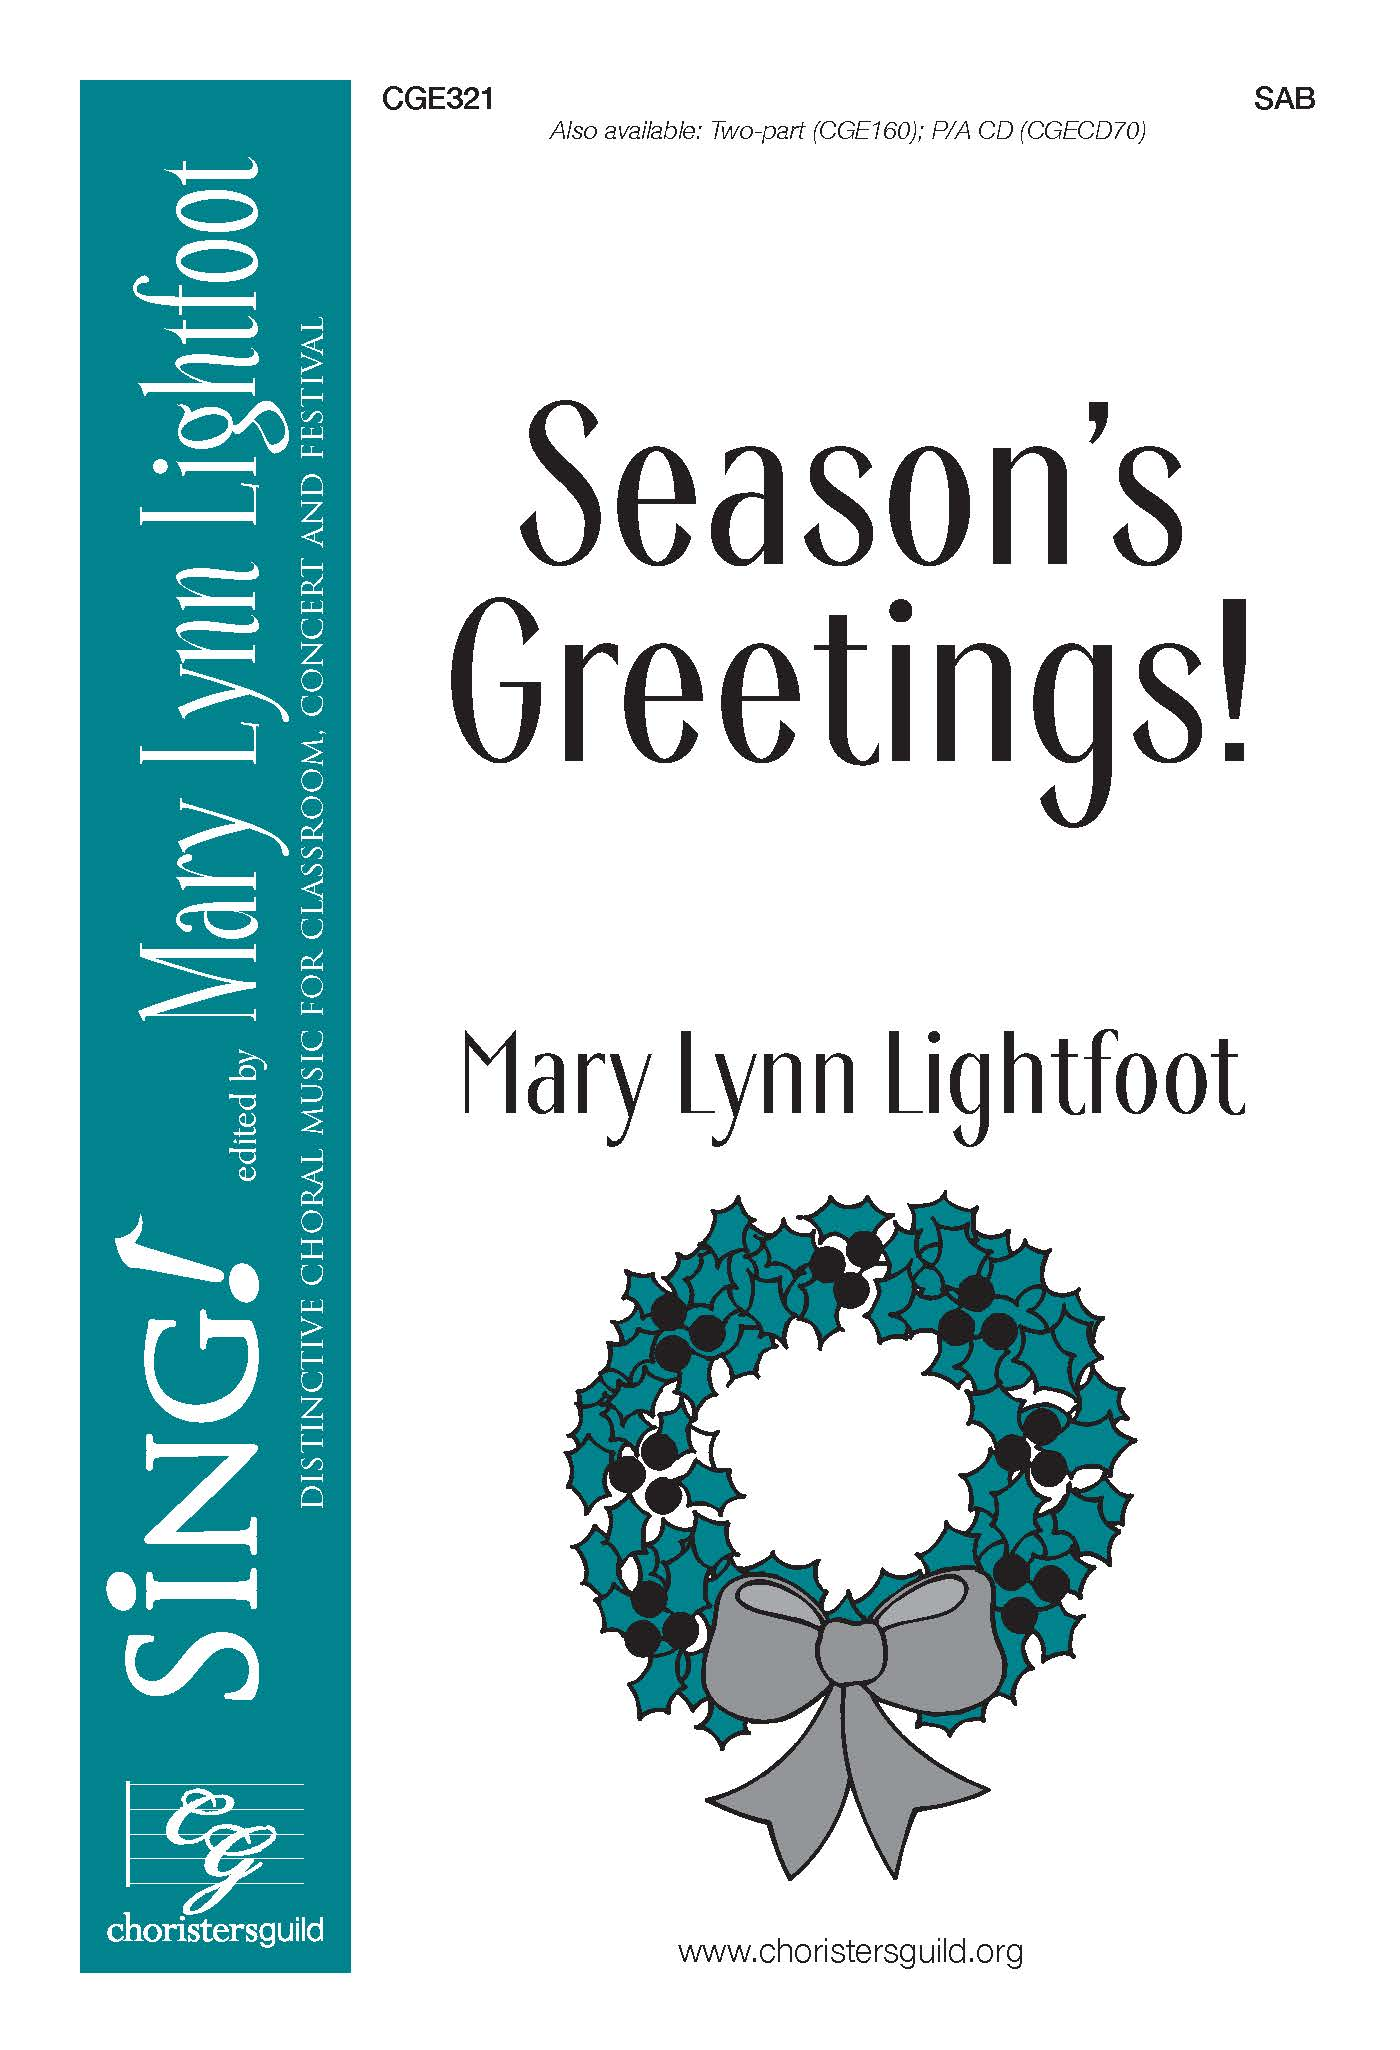 Season's Greetings! - SAB